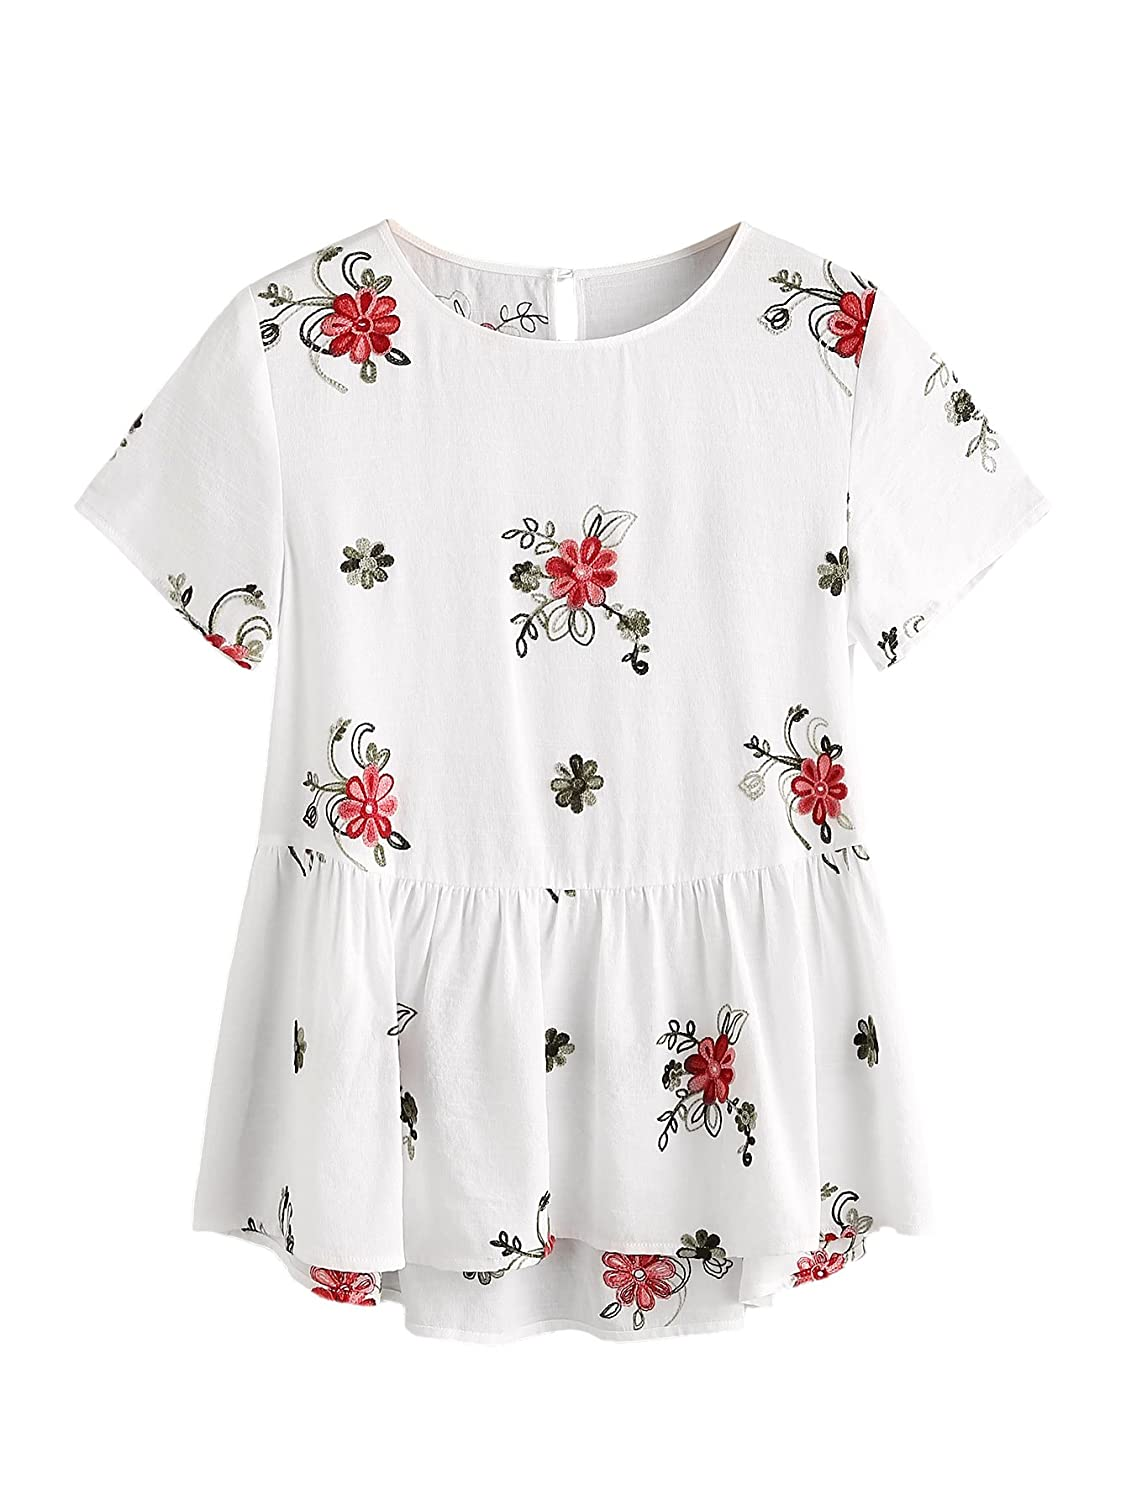 b3be4c6f13 Material: 50% Cotton, 50% Polyester. Fabric has no stretch. Round neck,  high low ruffle hem, back button. Sweet and cute embroidered, great for  school, ...